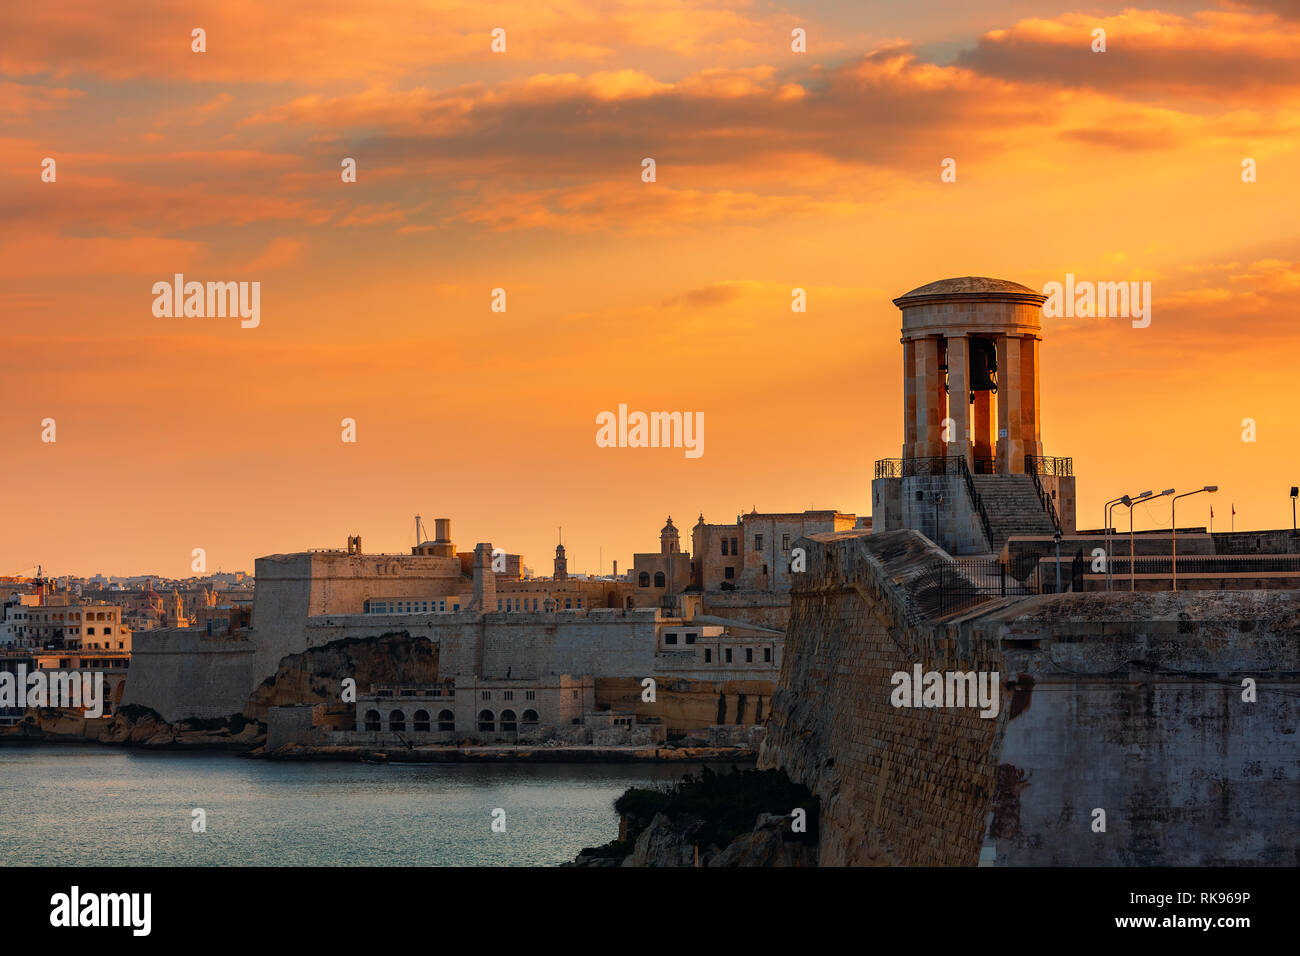 View of Siege Bell War Memorial as old walls and fortress on background under beautiful evening sky in Valletta, Malta. - Stock Image